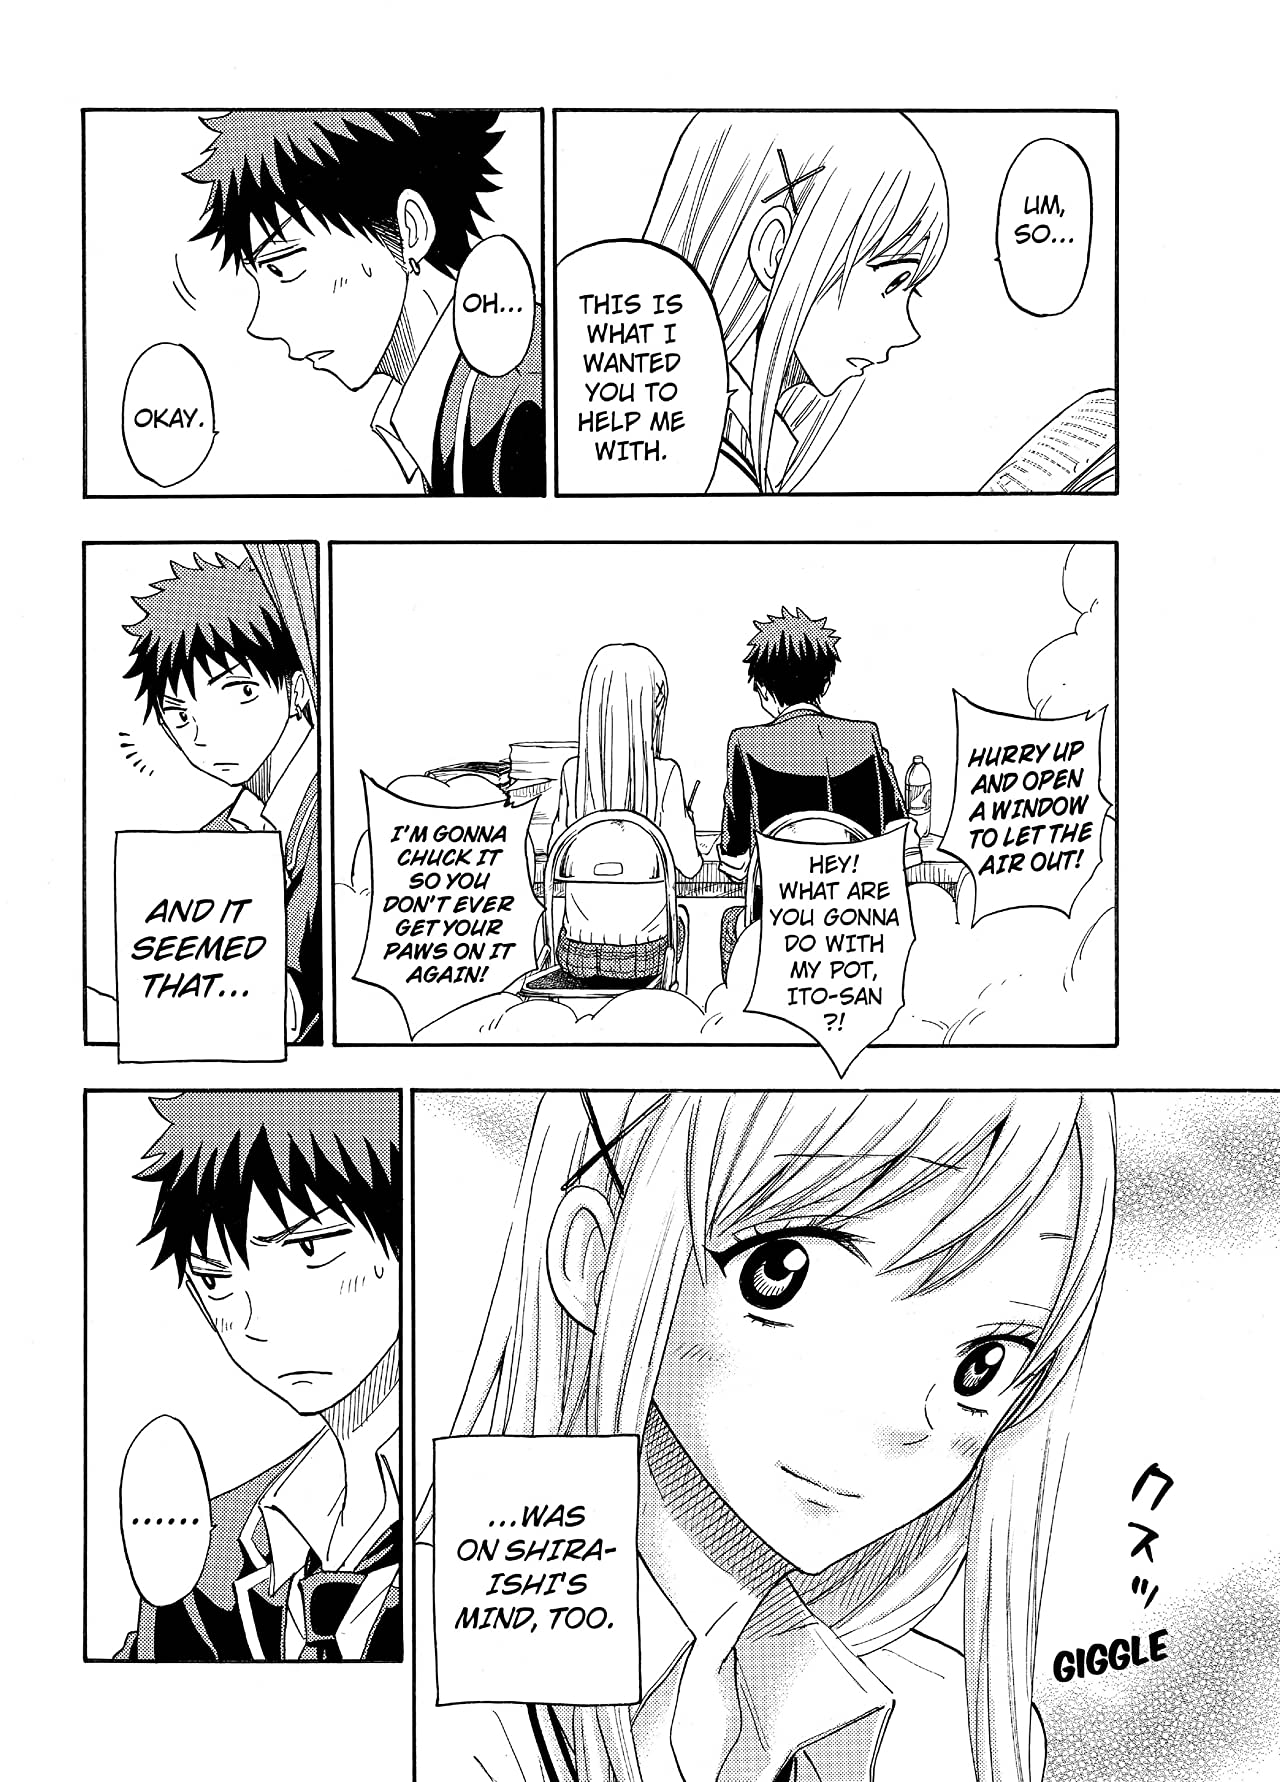 Yamada-kun and the Seven Witches #91